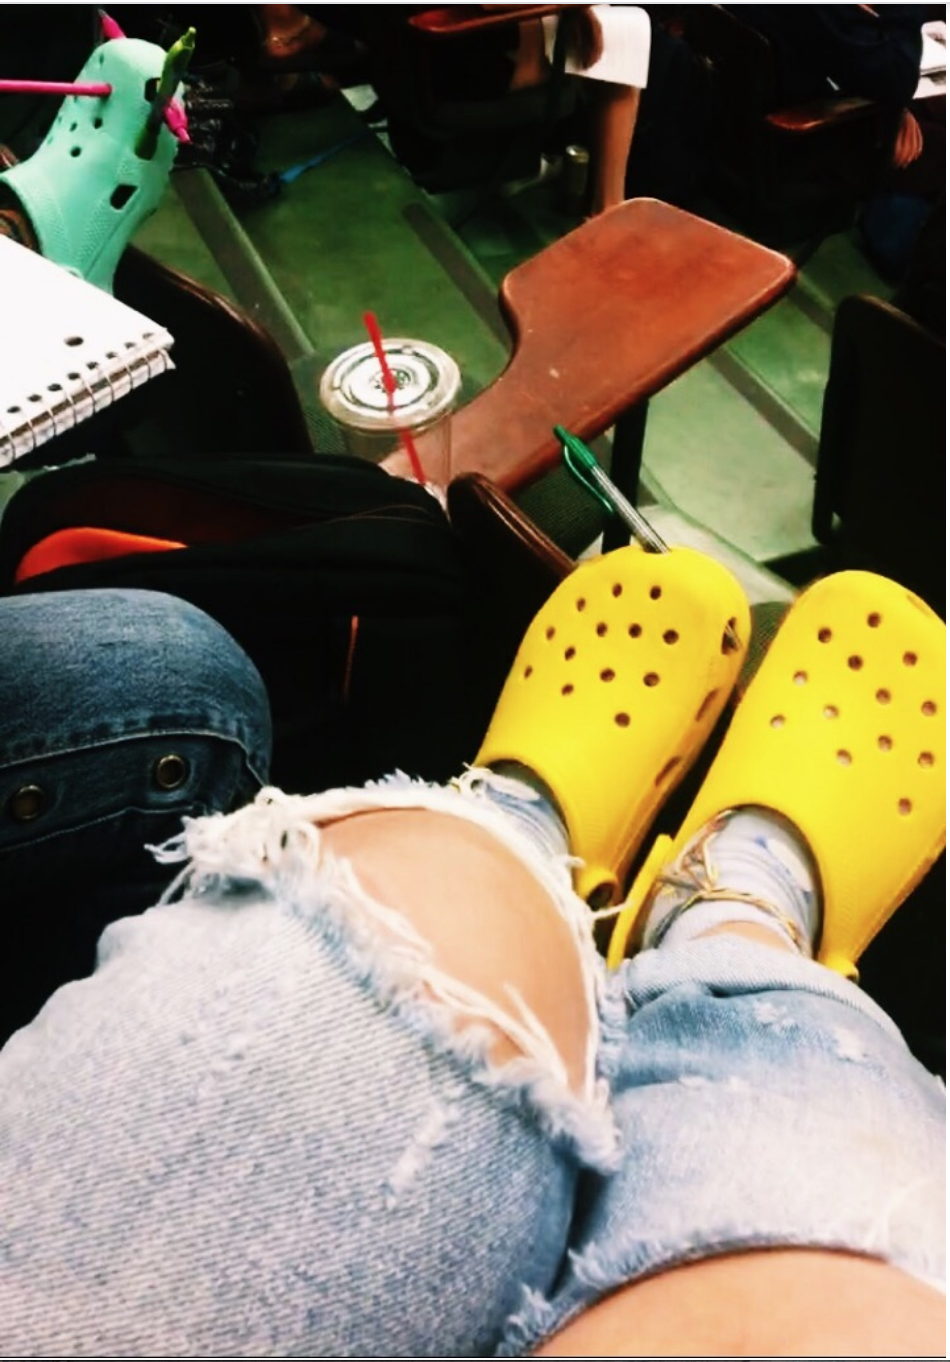 The Crocs in question.